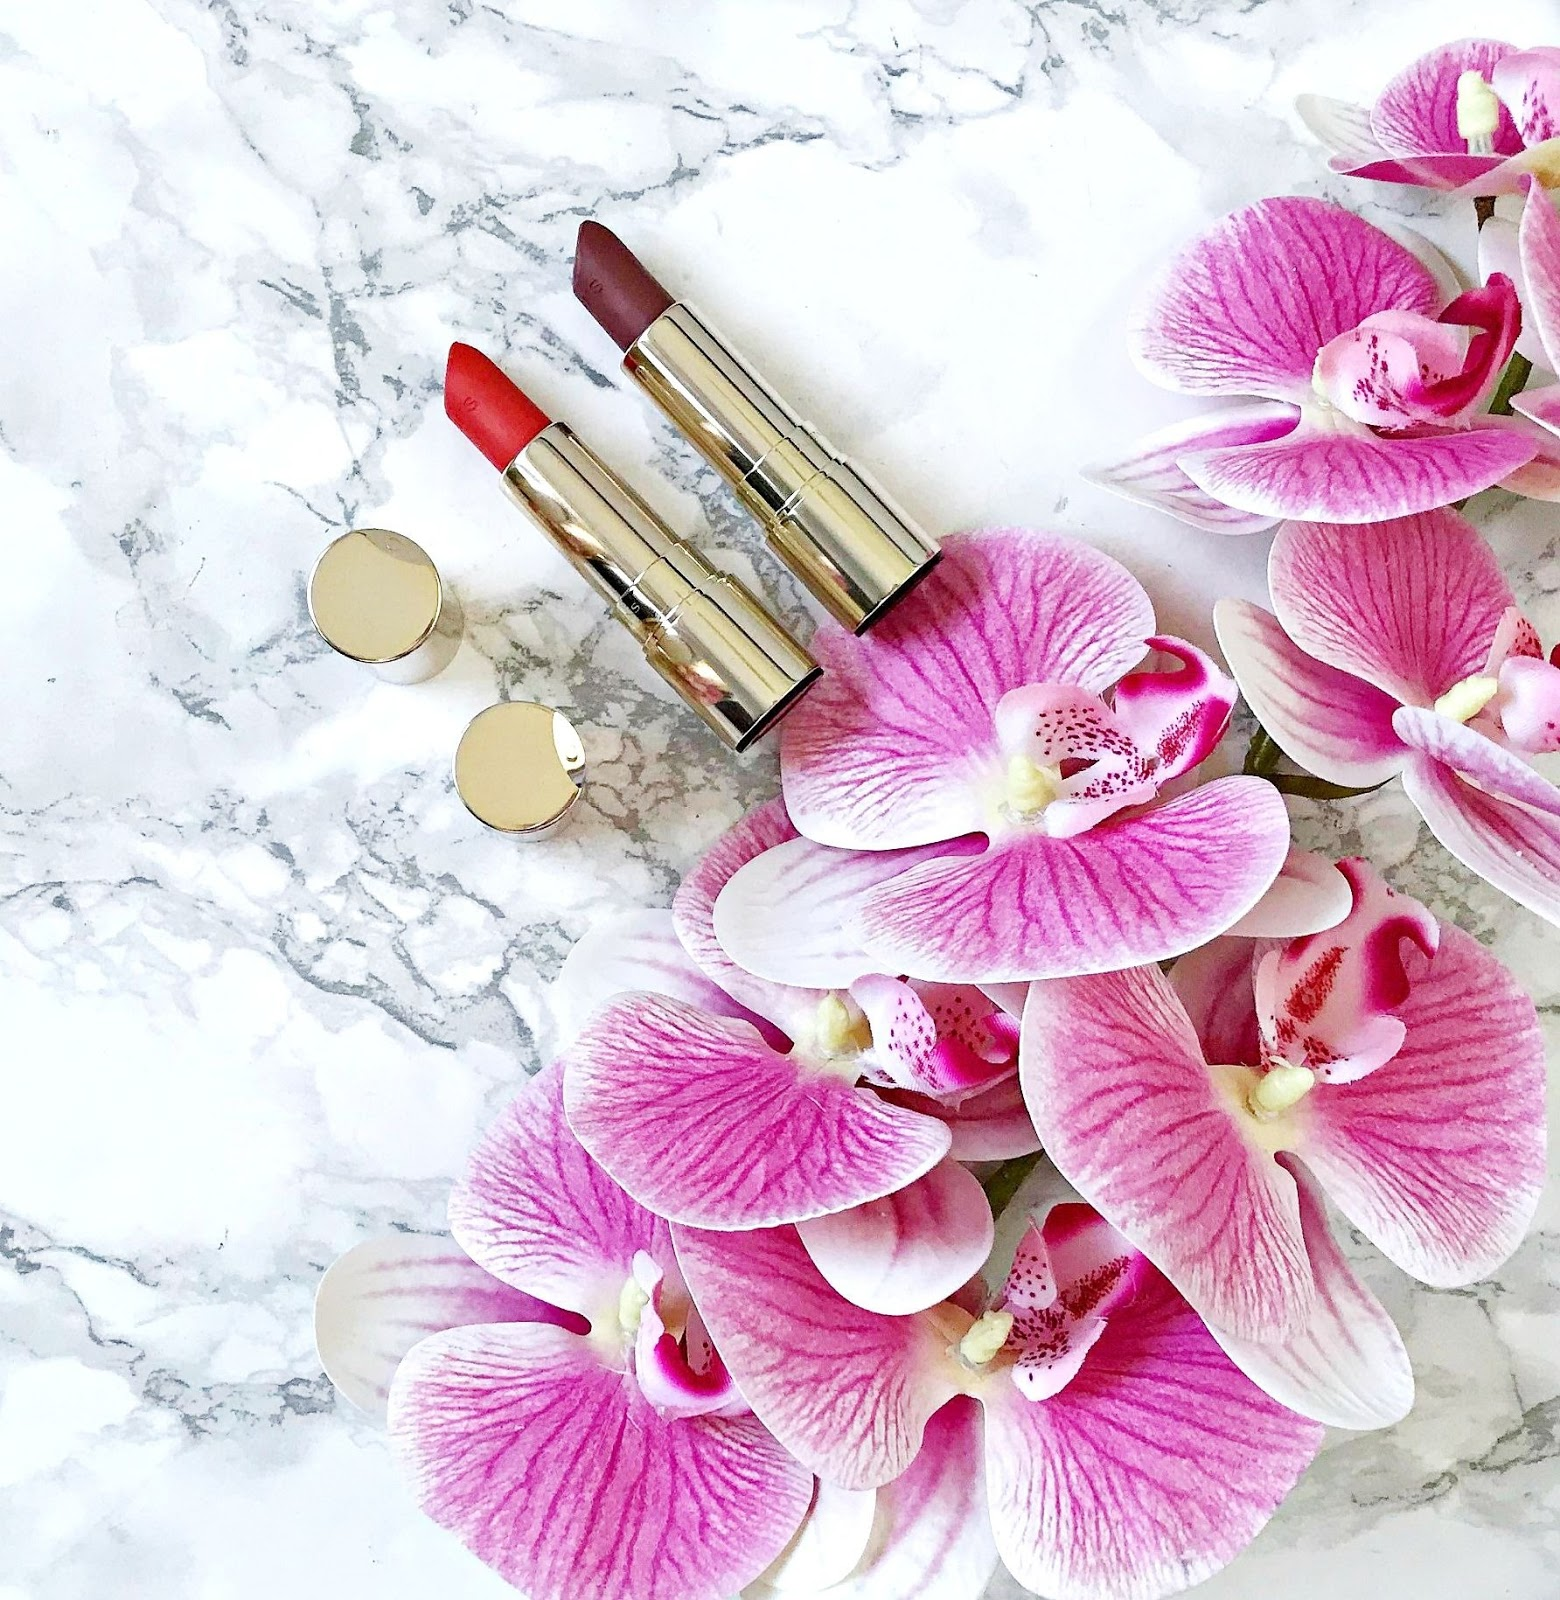 Clarins Joli Rouge Velvet Lipsticks Review & Swatches